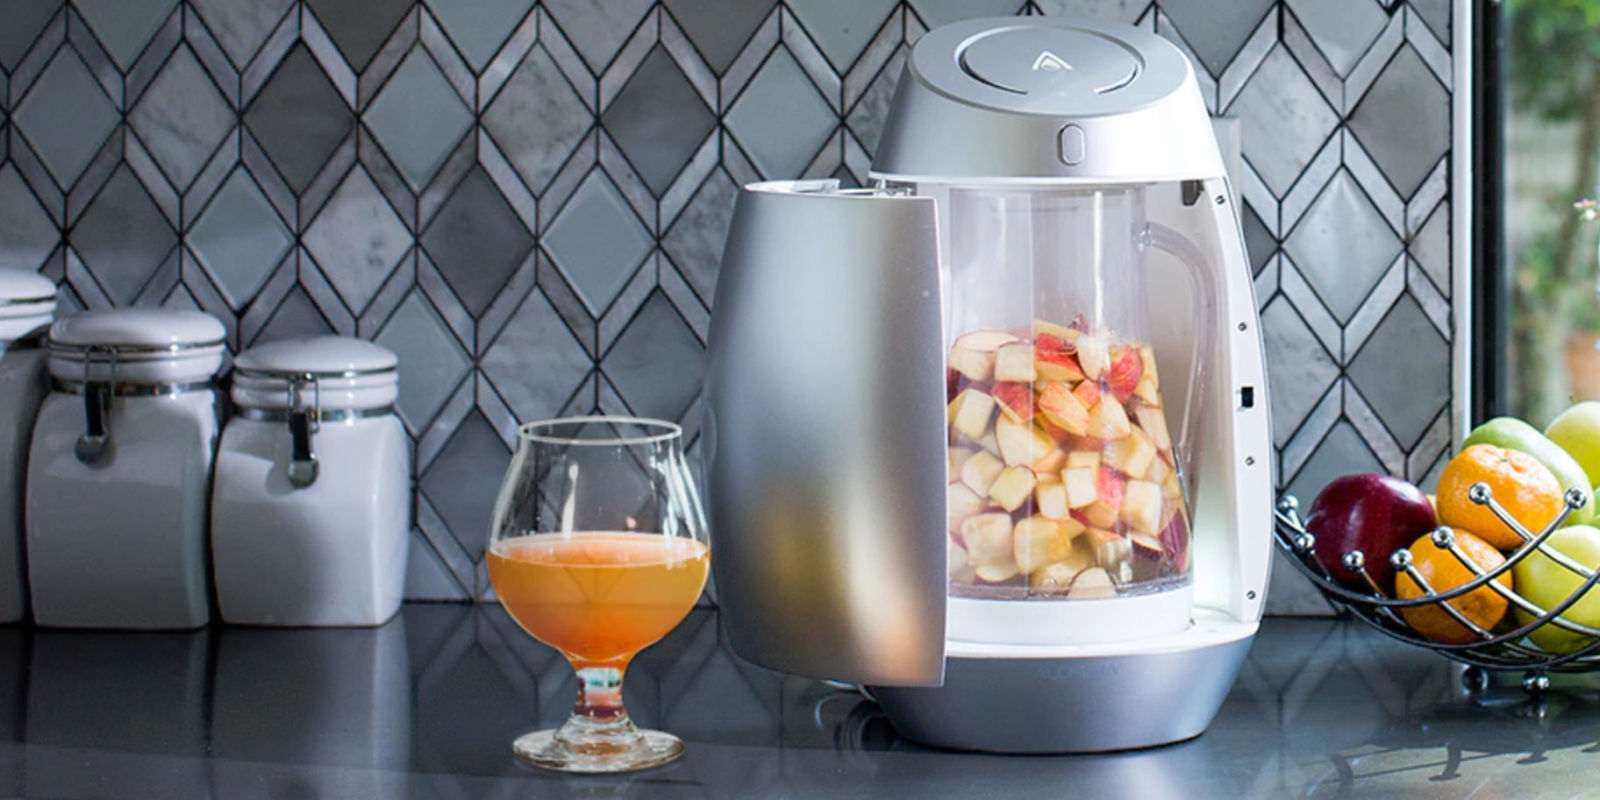 You Can Turn Any Fruit Into Alcohol With This Magical Appliance photo